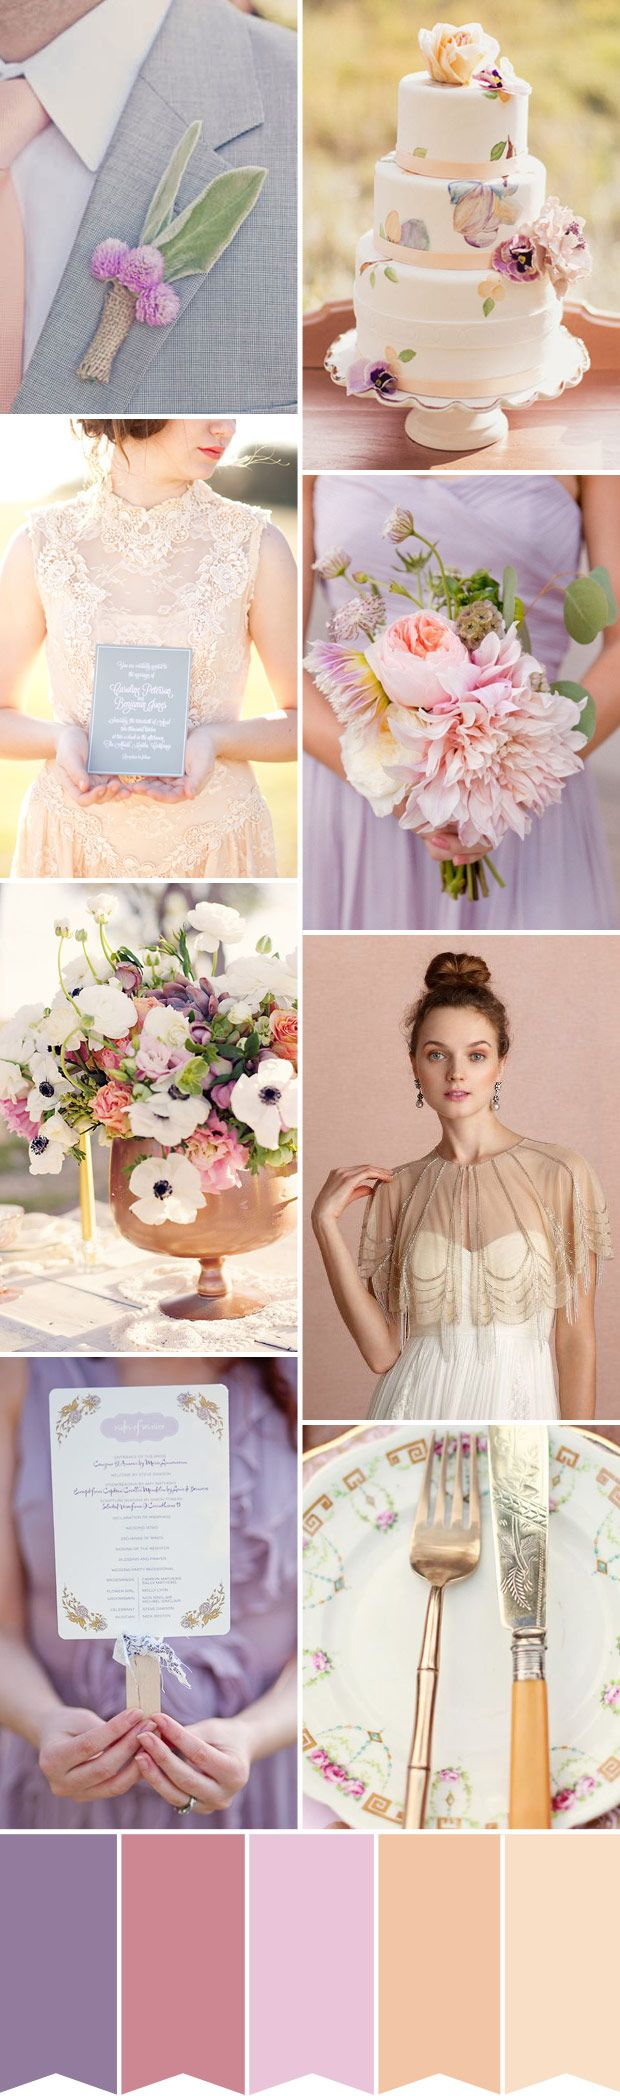 Purple and Peach Wedding Inspiration - Read More on One Fab Day http://onefabday.com/soft-purple-peach-wedding-inspiration/